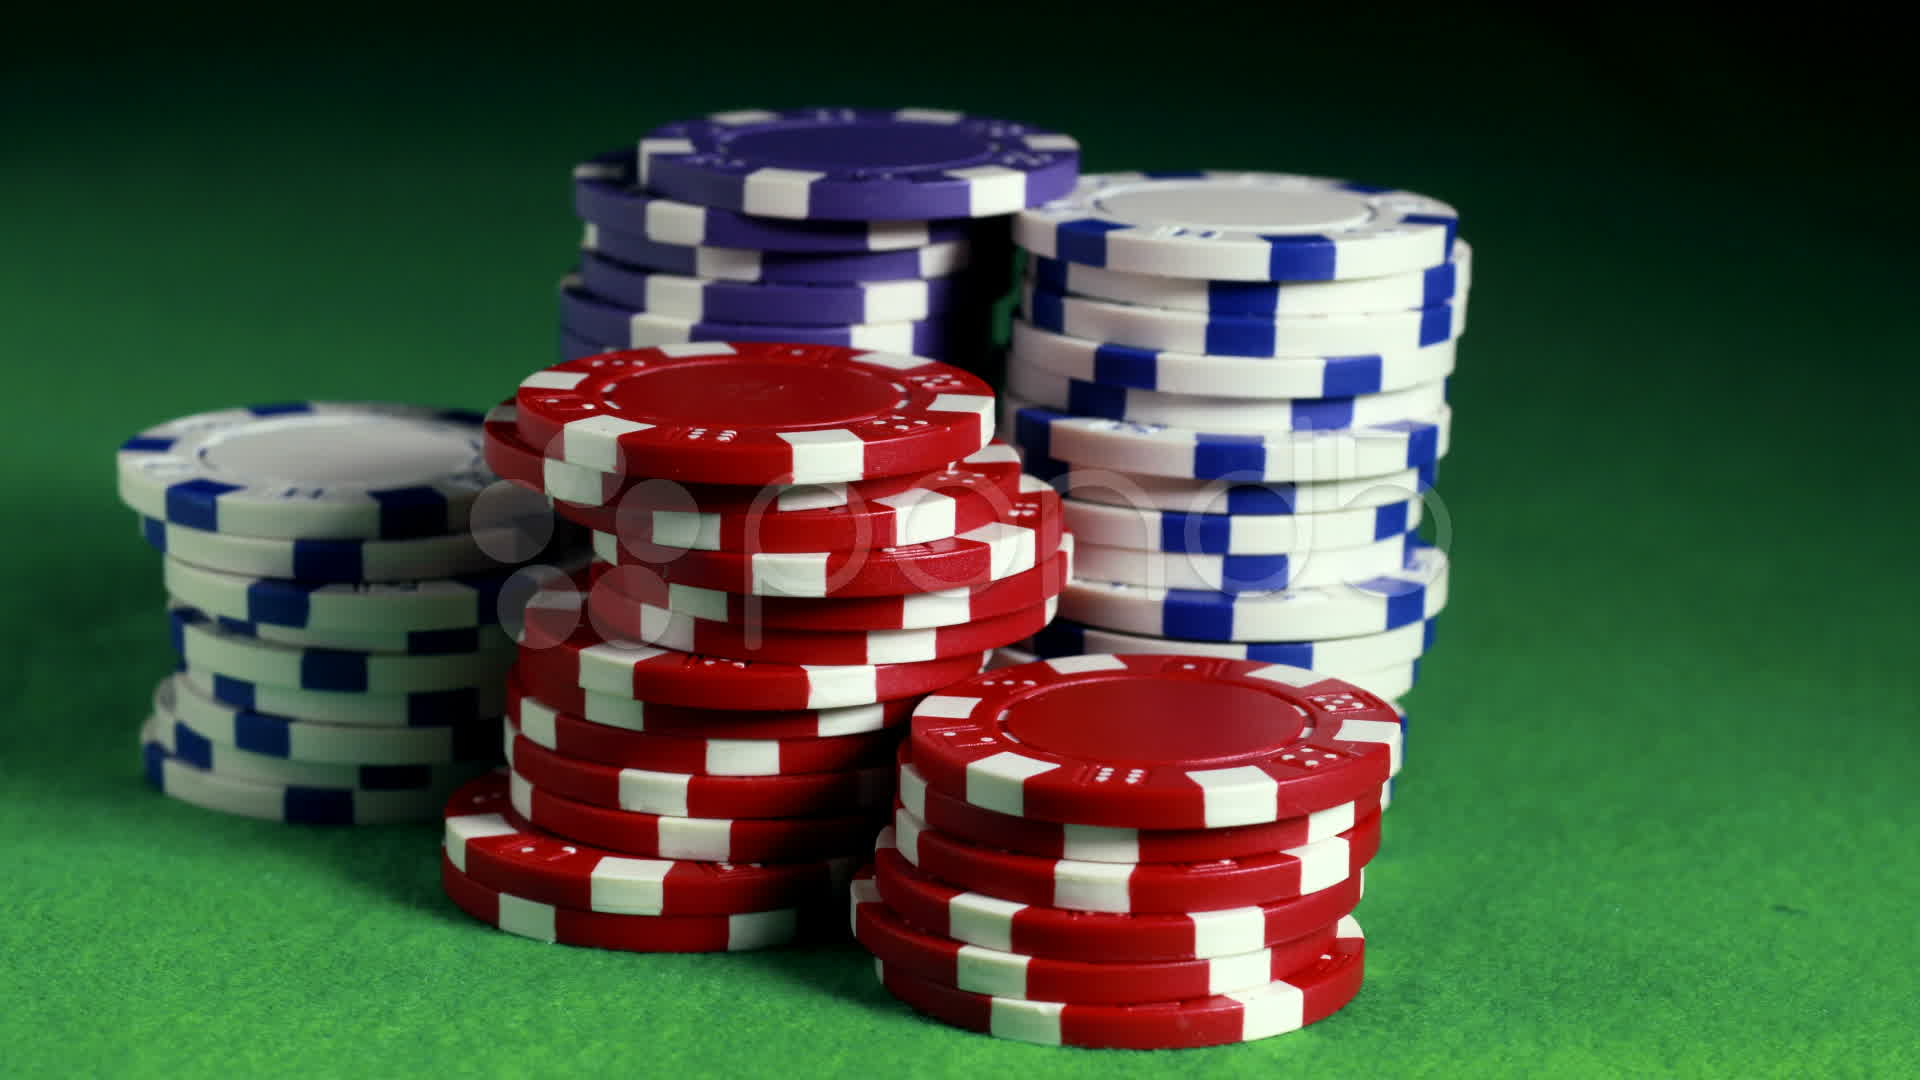 Stock Video: Poker chips stacking up ~ #11148884   Pond5